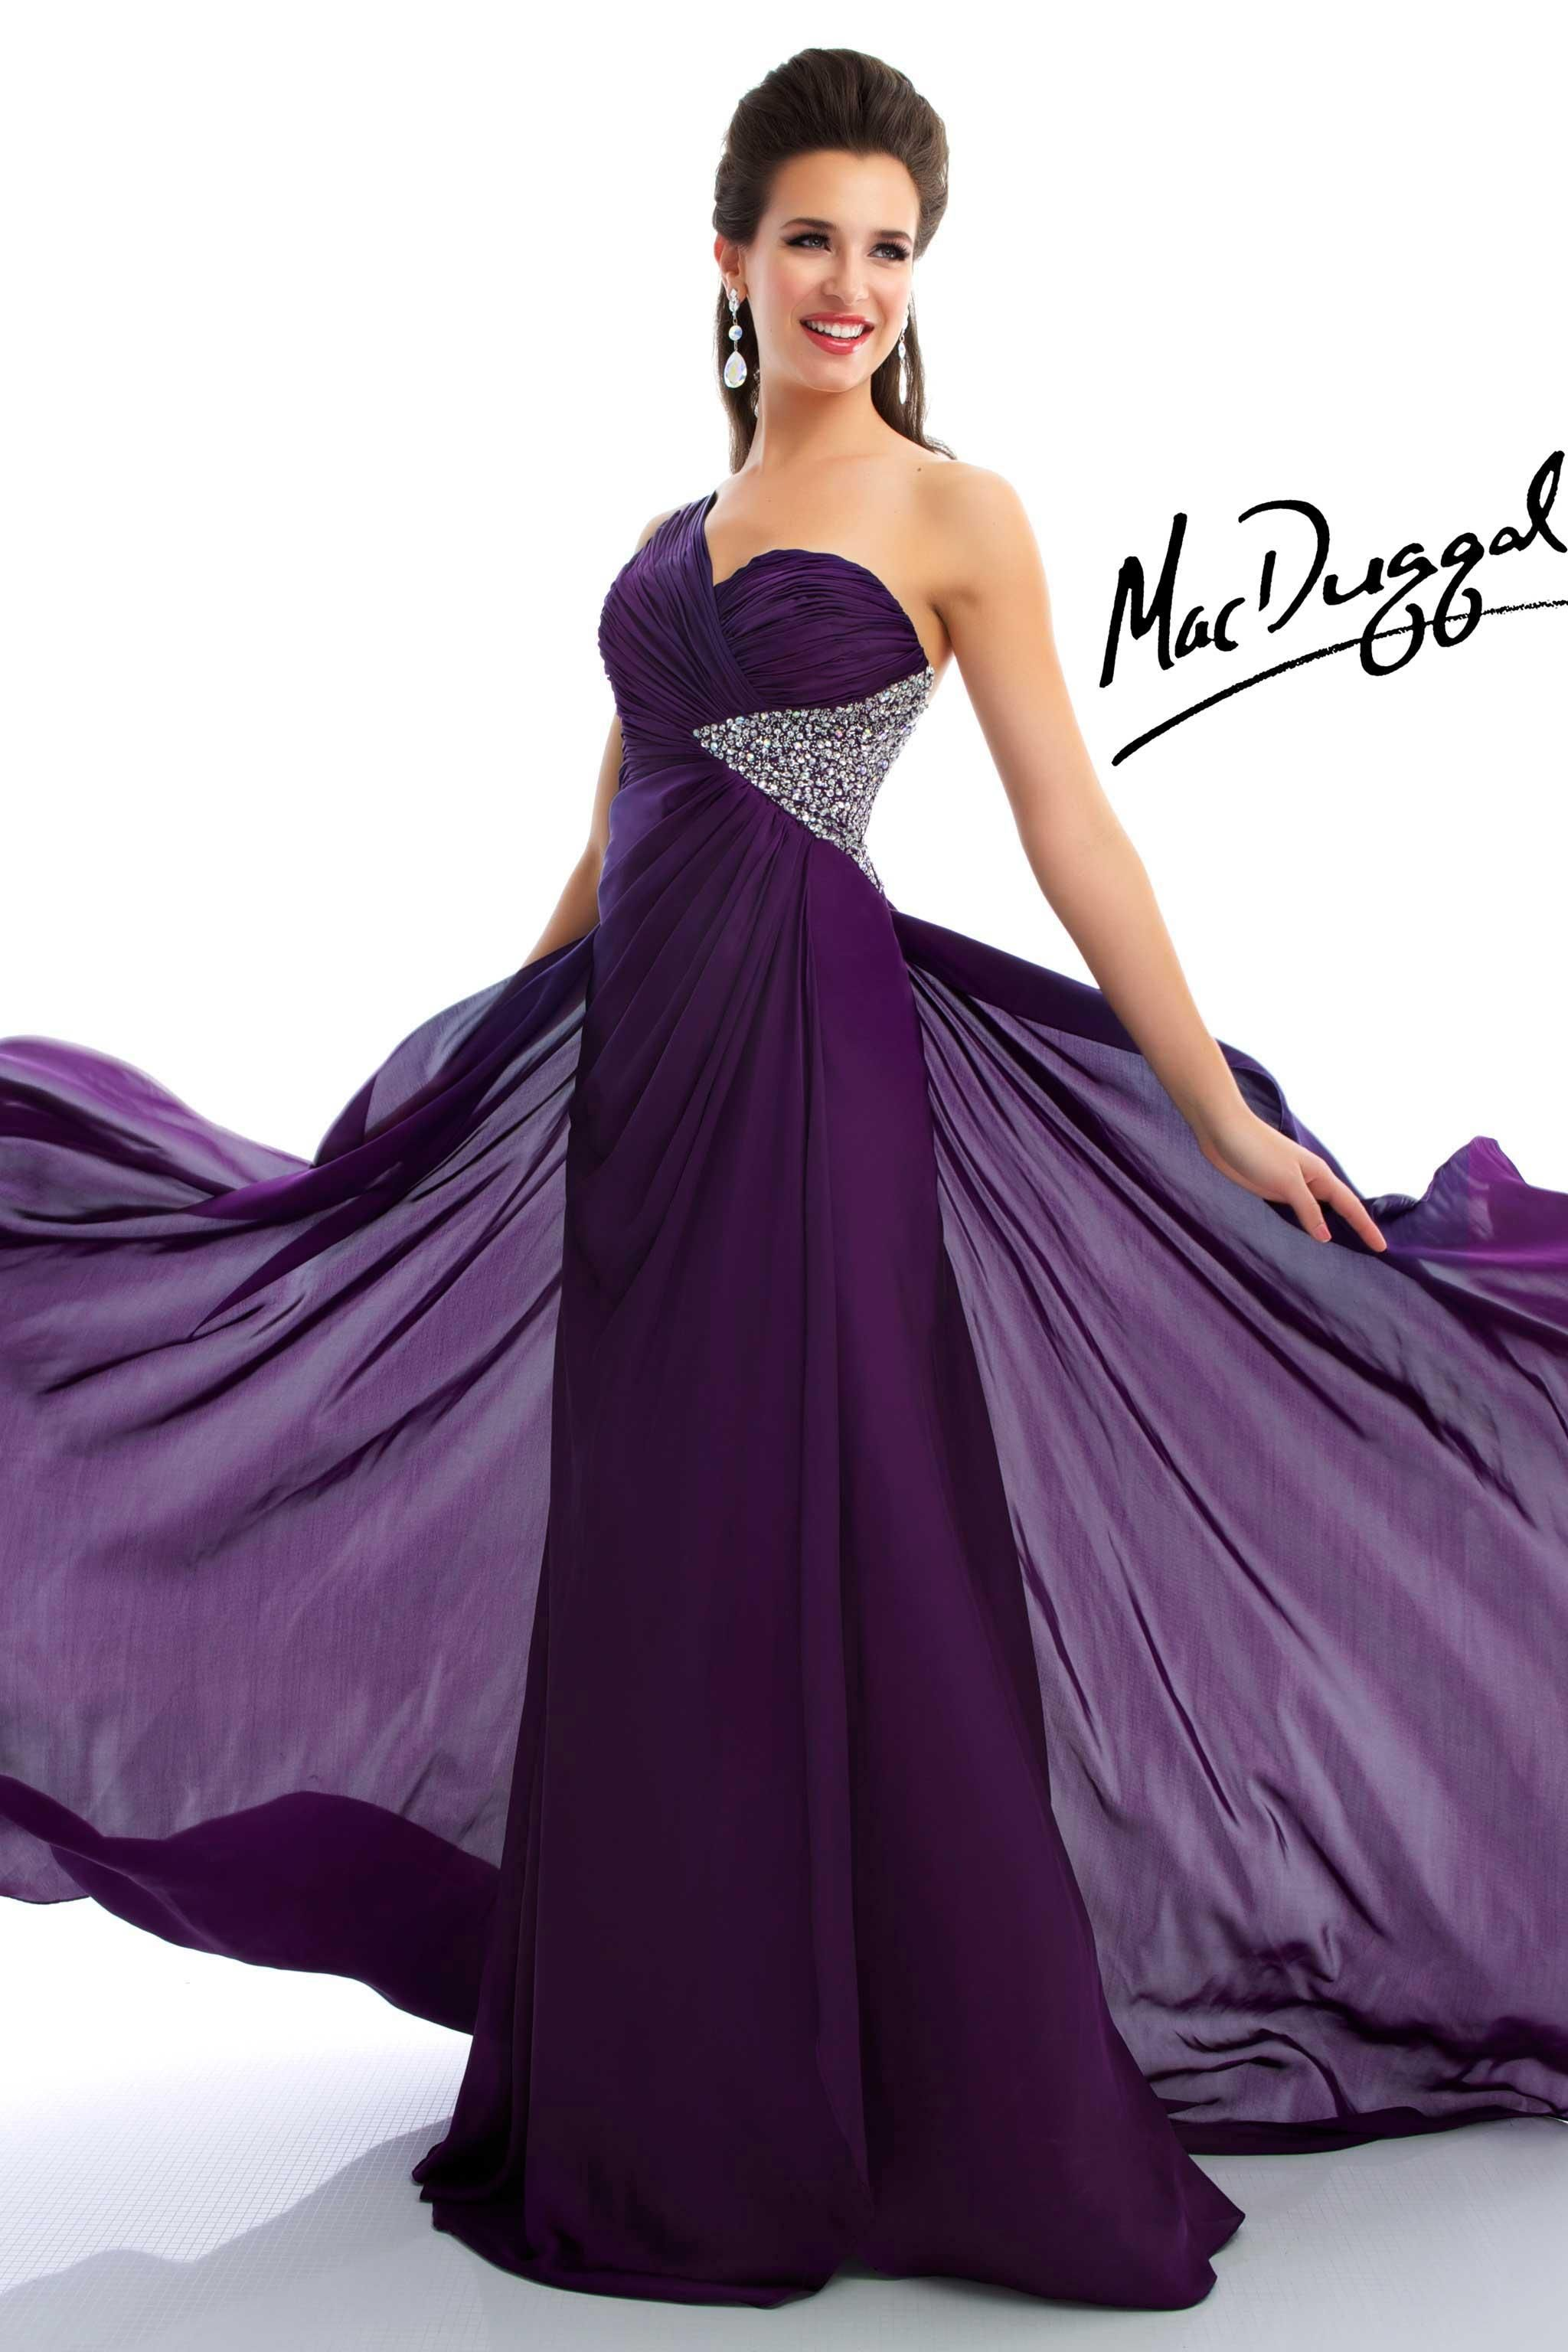 Dark Purple Dresses For Prom Images & Pictures - Becuo | Hochzeit ...